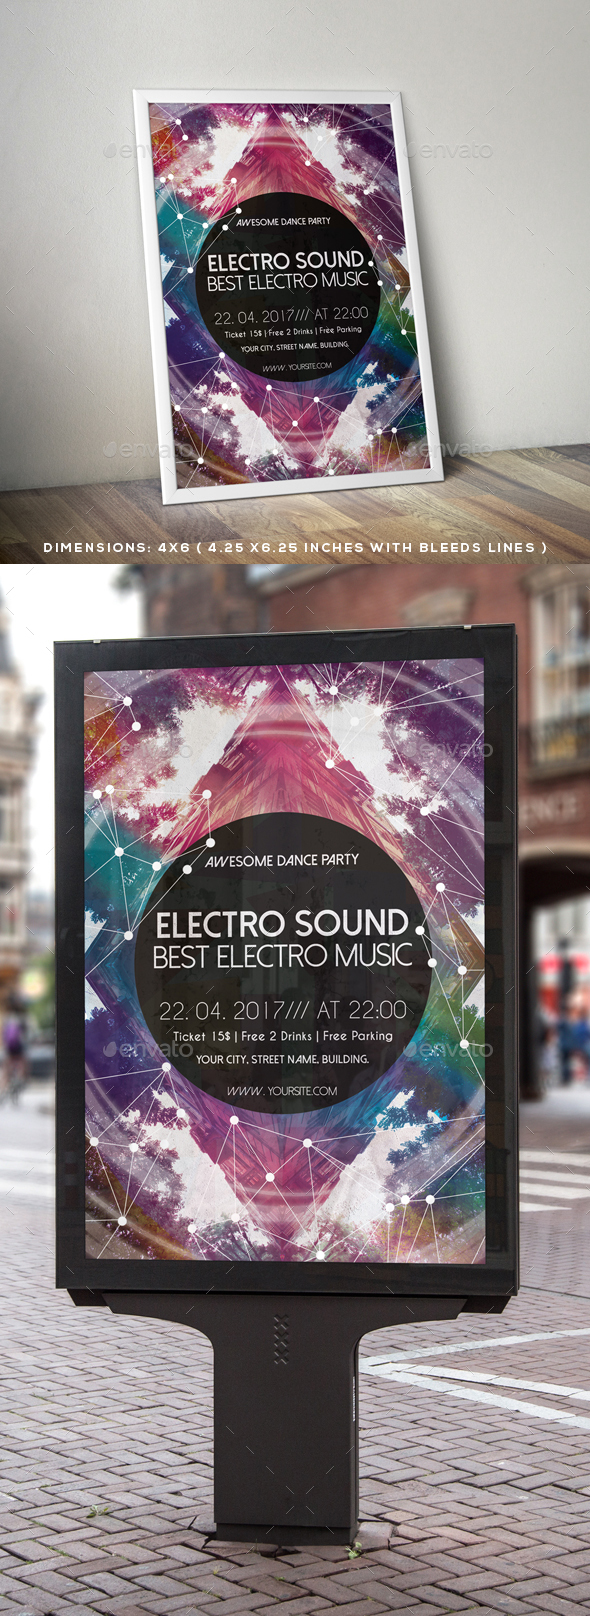 Electro Sound Flyer Poster - Clubs & Parties Events